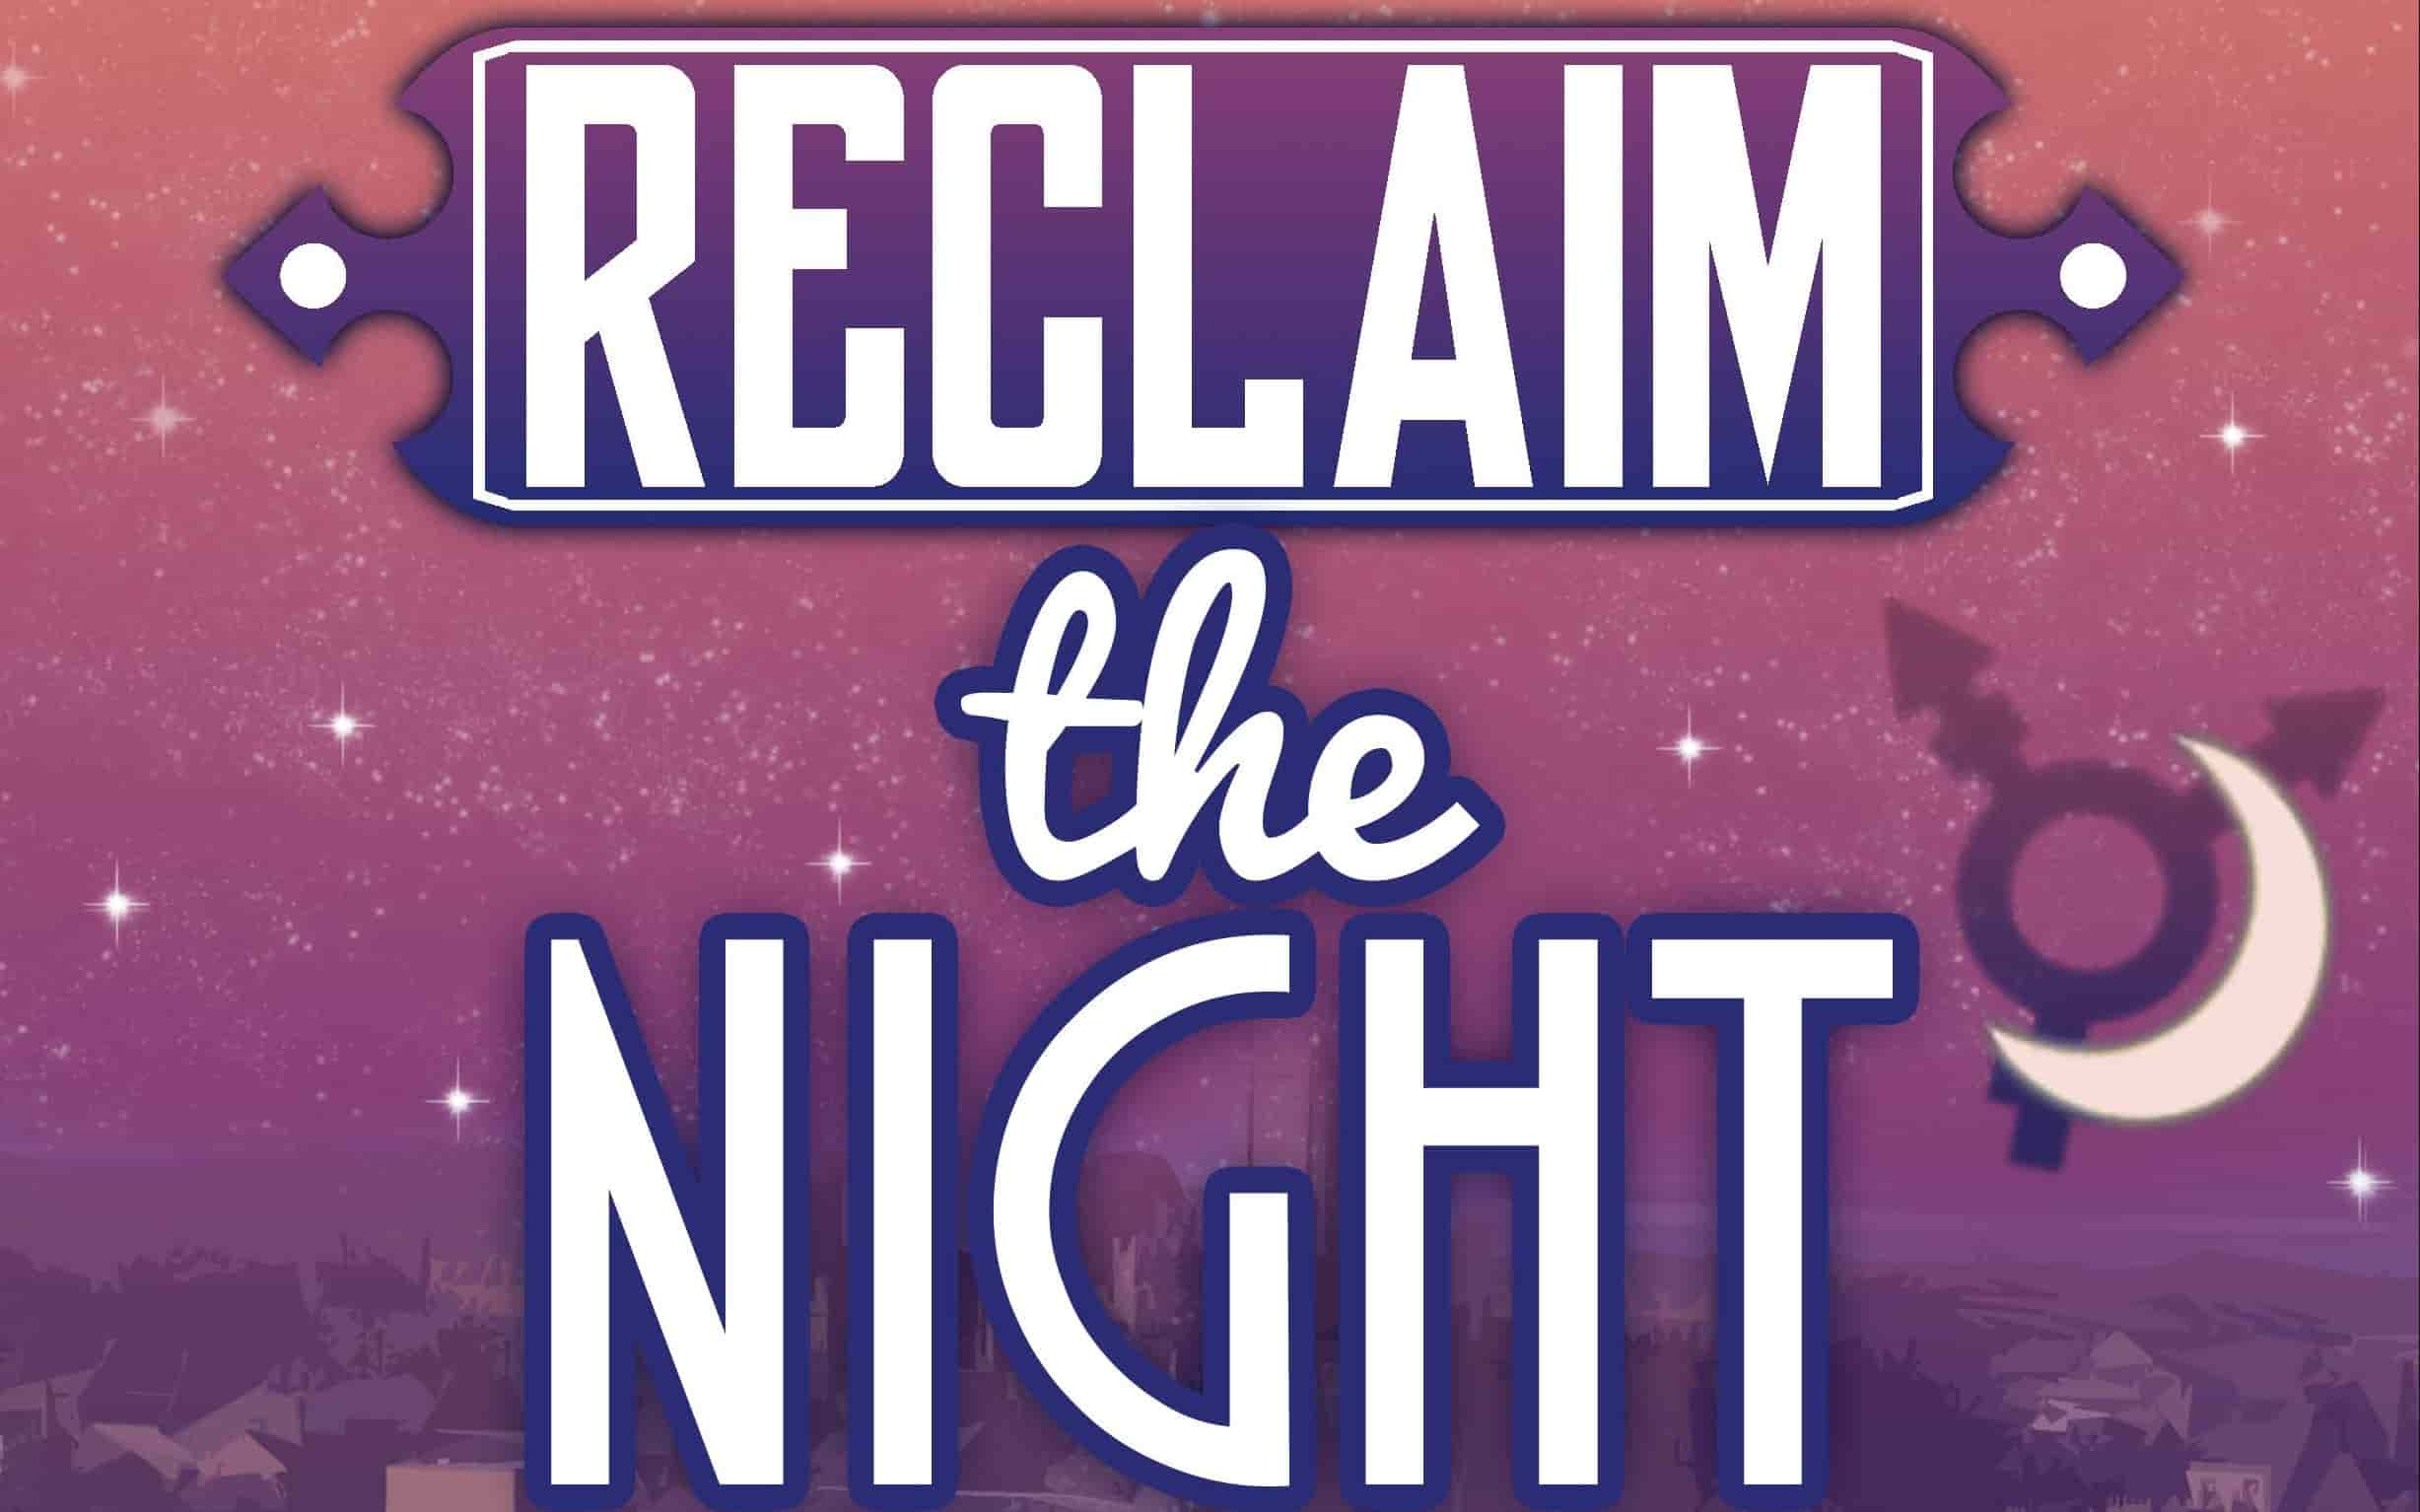 Reclaim The Night MOON